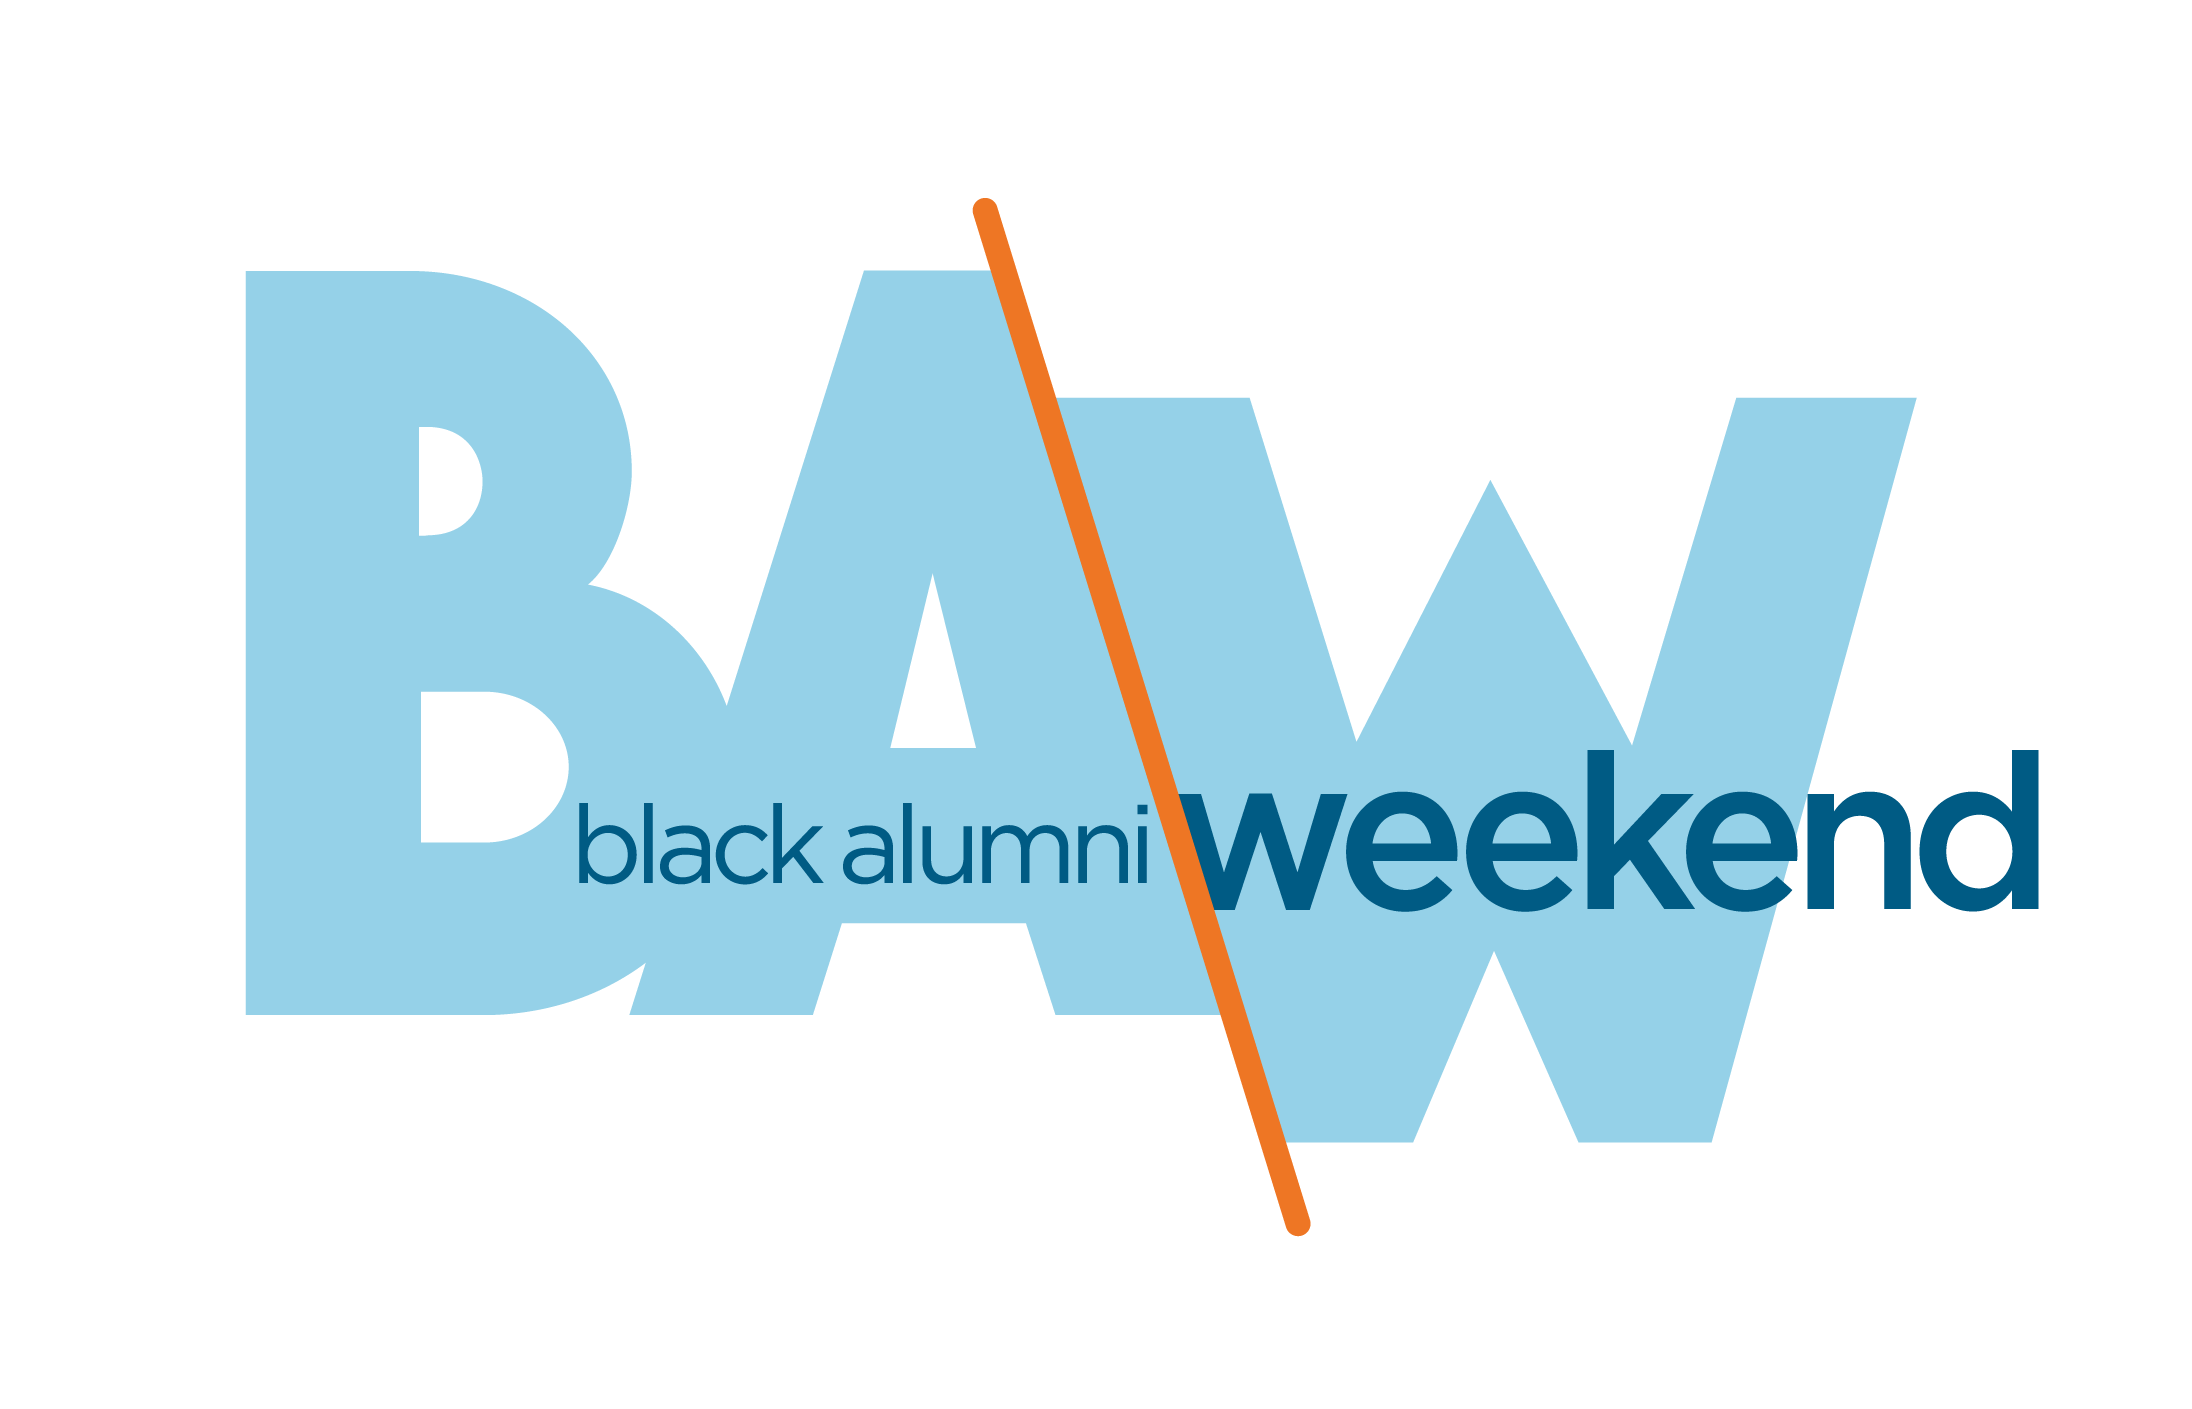 2f4d59763 The Auburn Alumni Association is excited to welcome you back to campus for  Black Alumni Weekend, September 27 – 29, 2019.